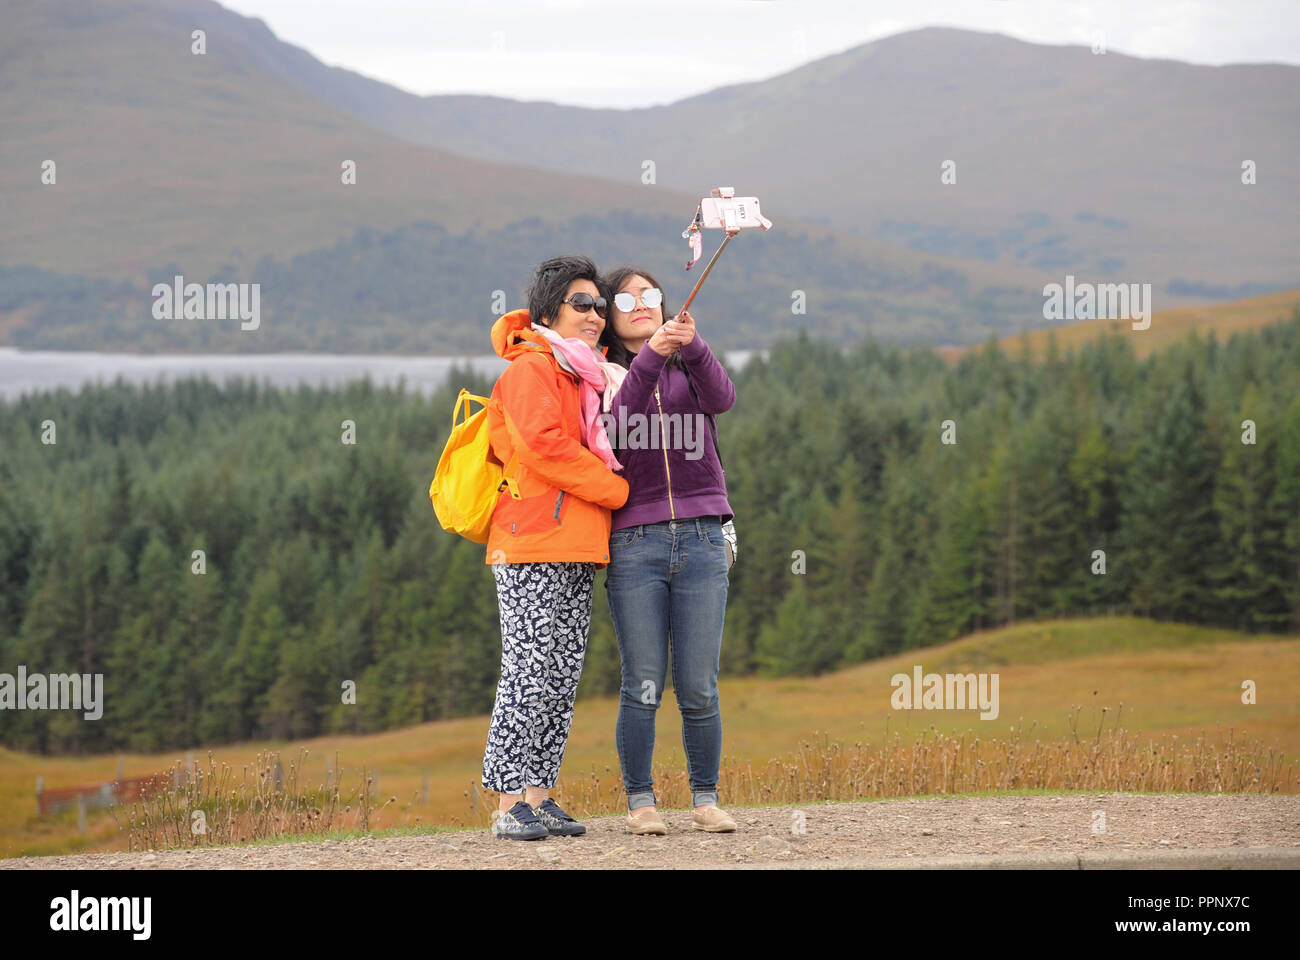 JAPANESE TOURISTS TAKING SELFIE PHOTOGRAPHS IN THE SCOTTISH HIGHLANDS RE TOURISM TOURING COACH TOURS HOLIDAYS VIEWPOINT SCENIC VIEWS UK - Stock Image